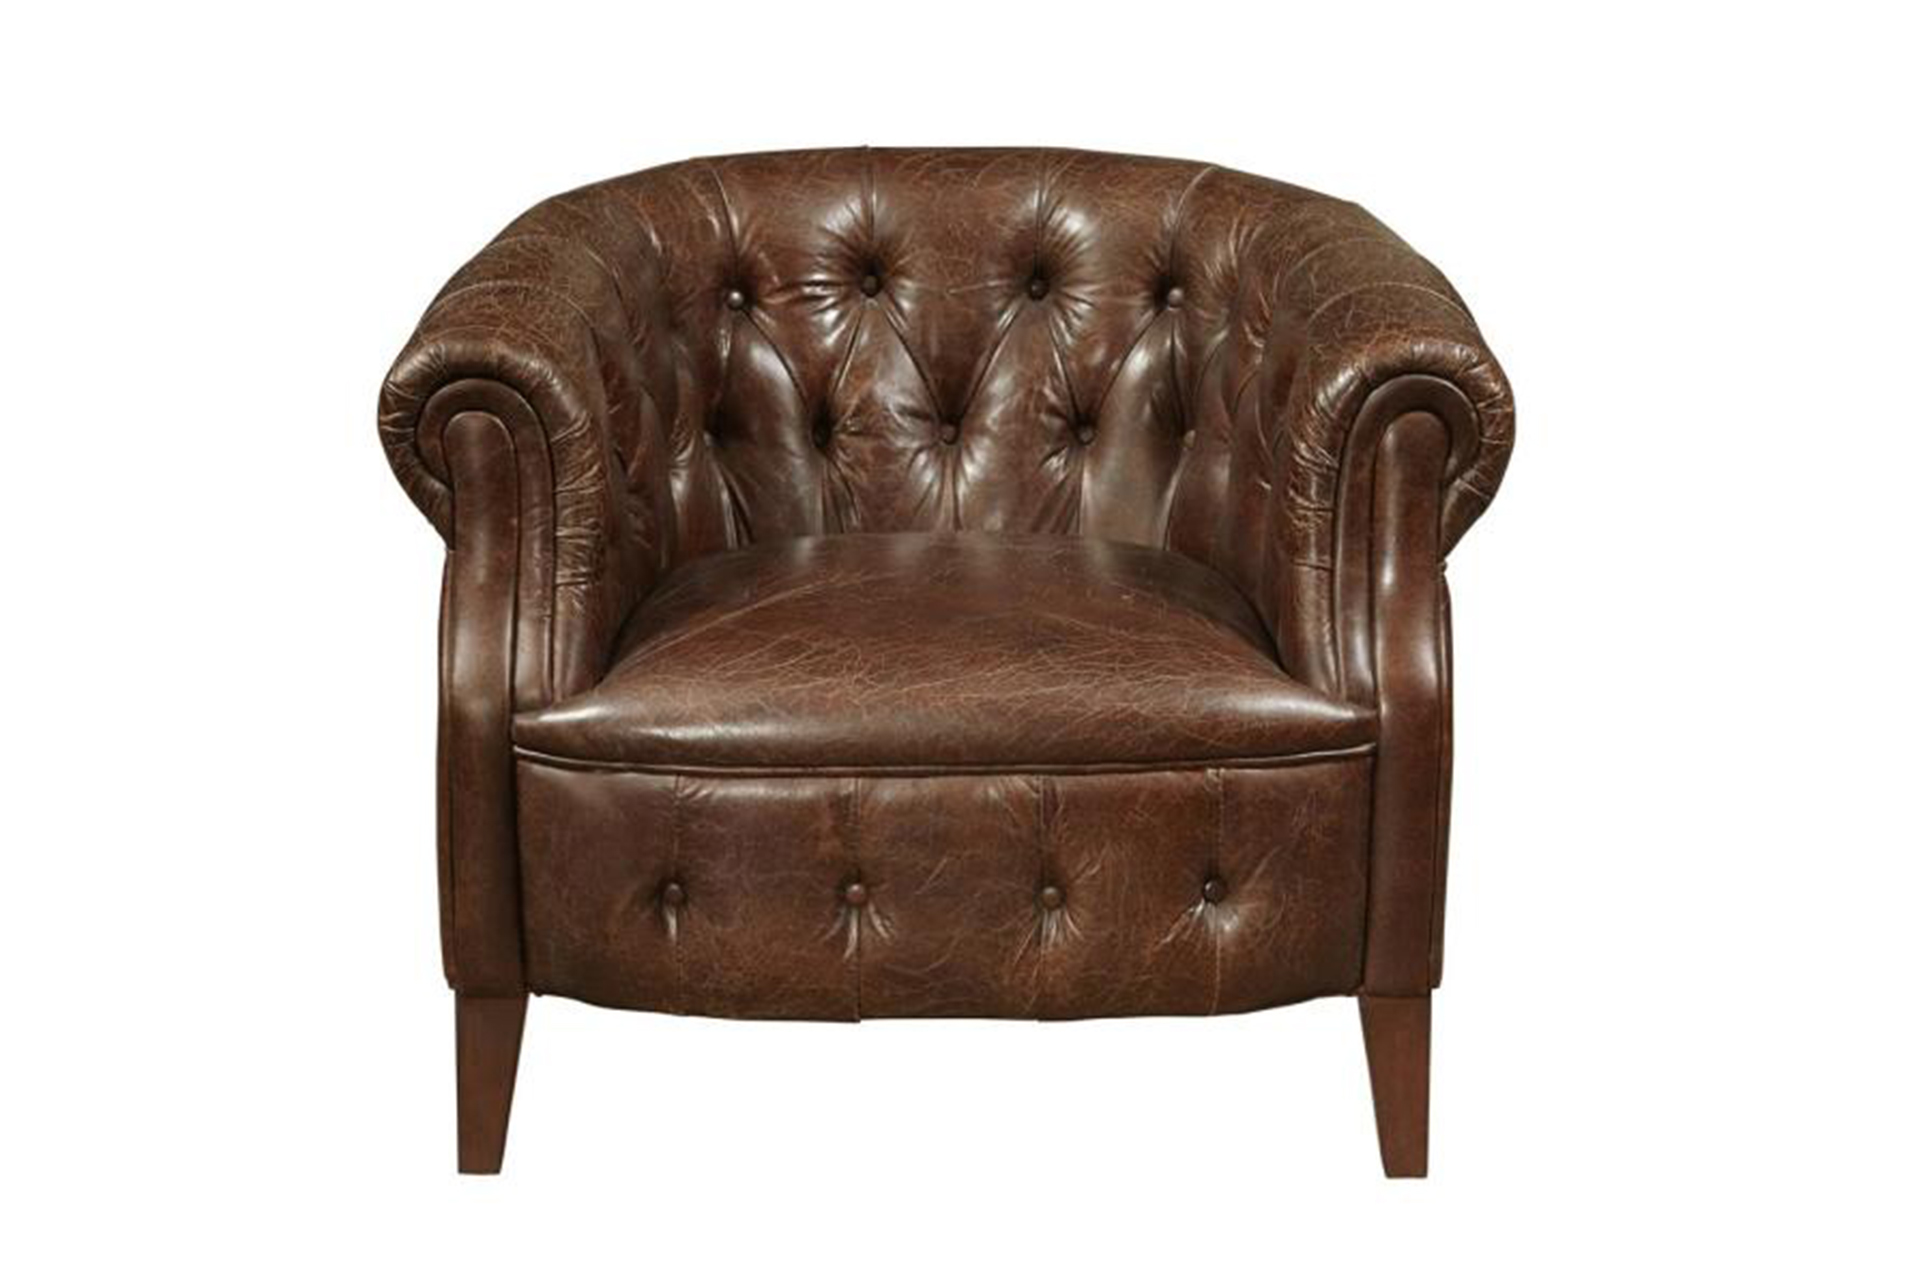 Merveilleux Coffee Leather Tufted Chair W/Nailheads   360 Elements